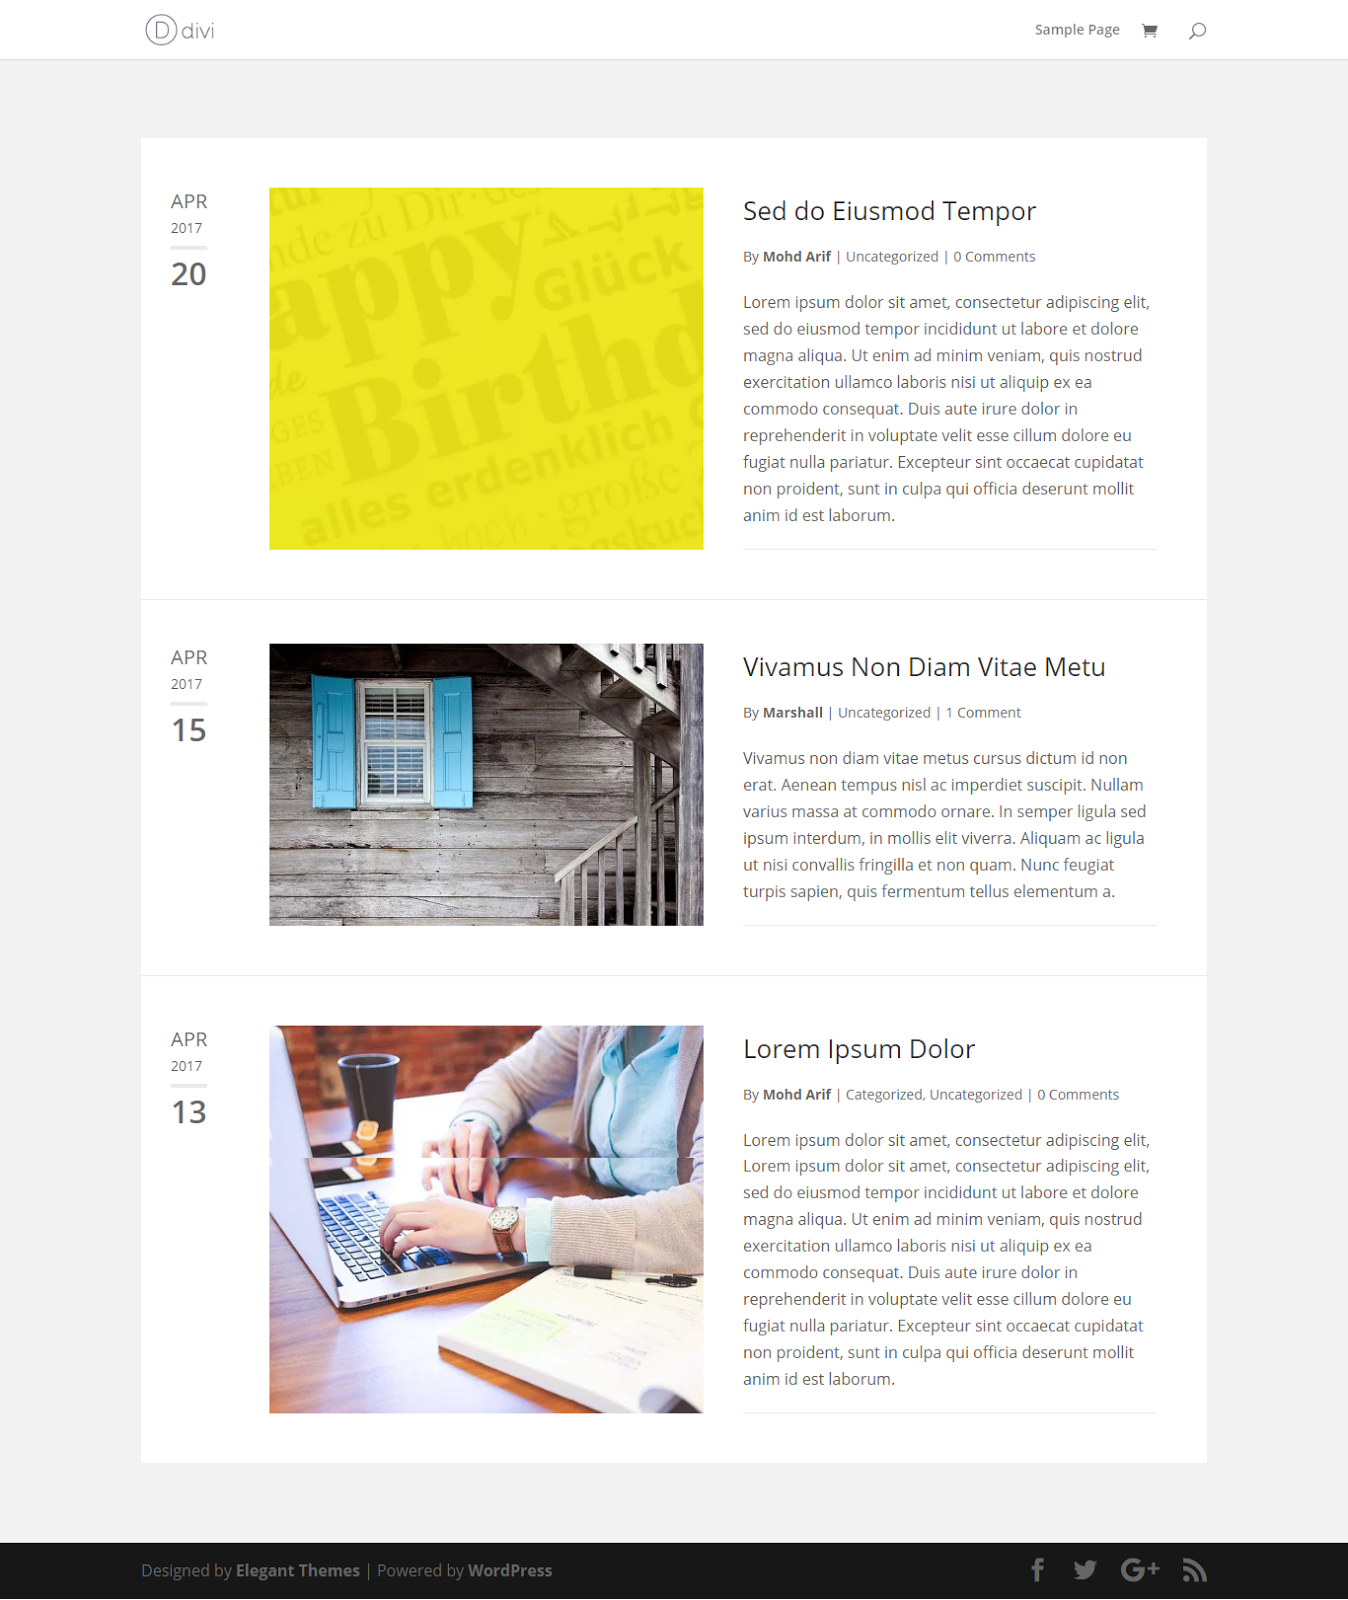 How to Customise the Divi Theme Blog Layout